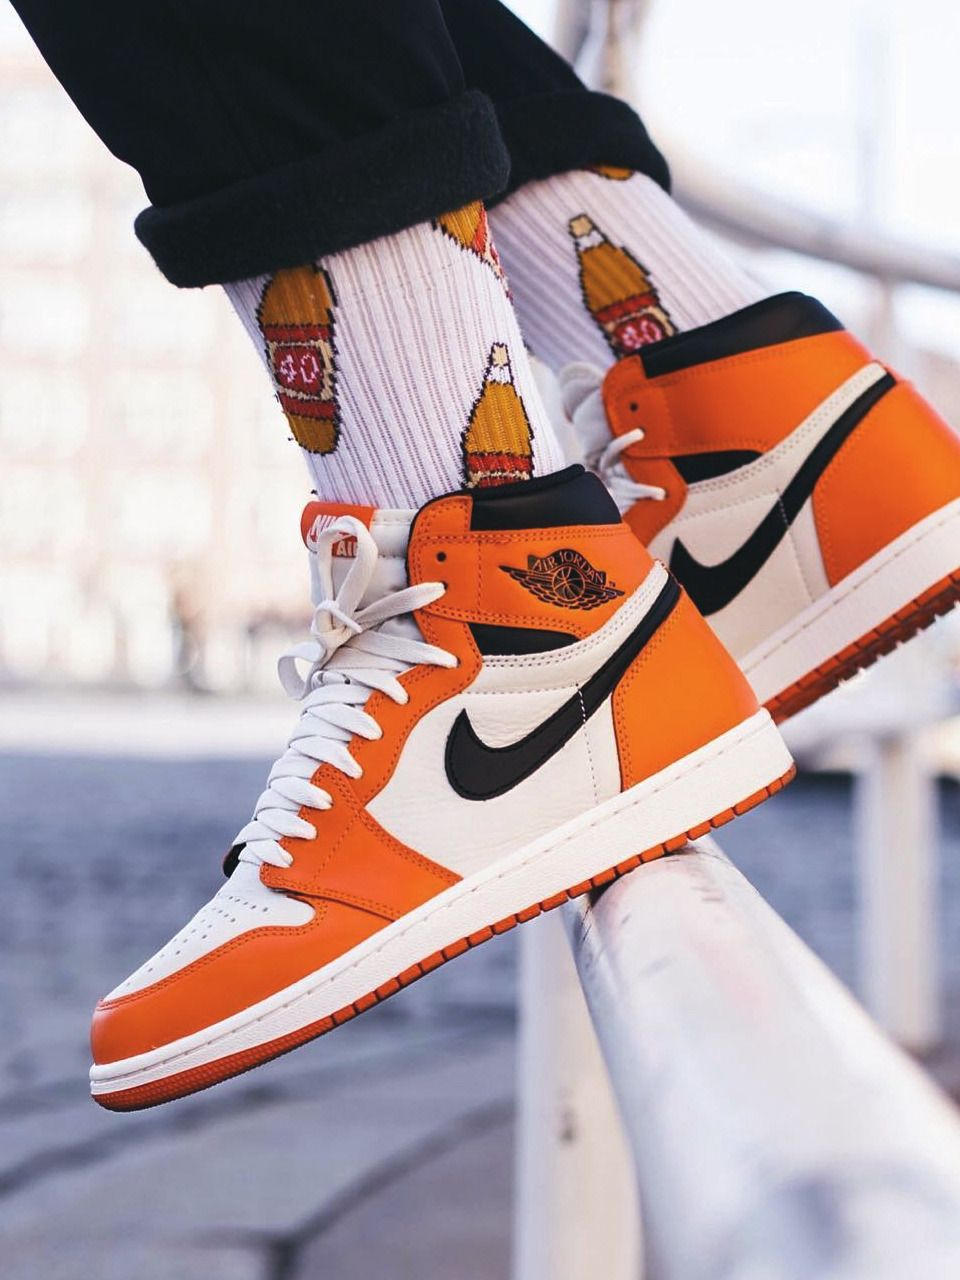 Nike Air Jordan 1 Shattered Backboard 2 0 2016 By Jvstakid